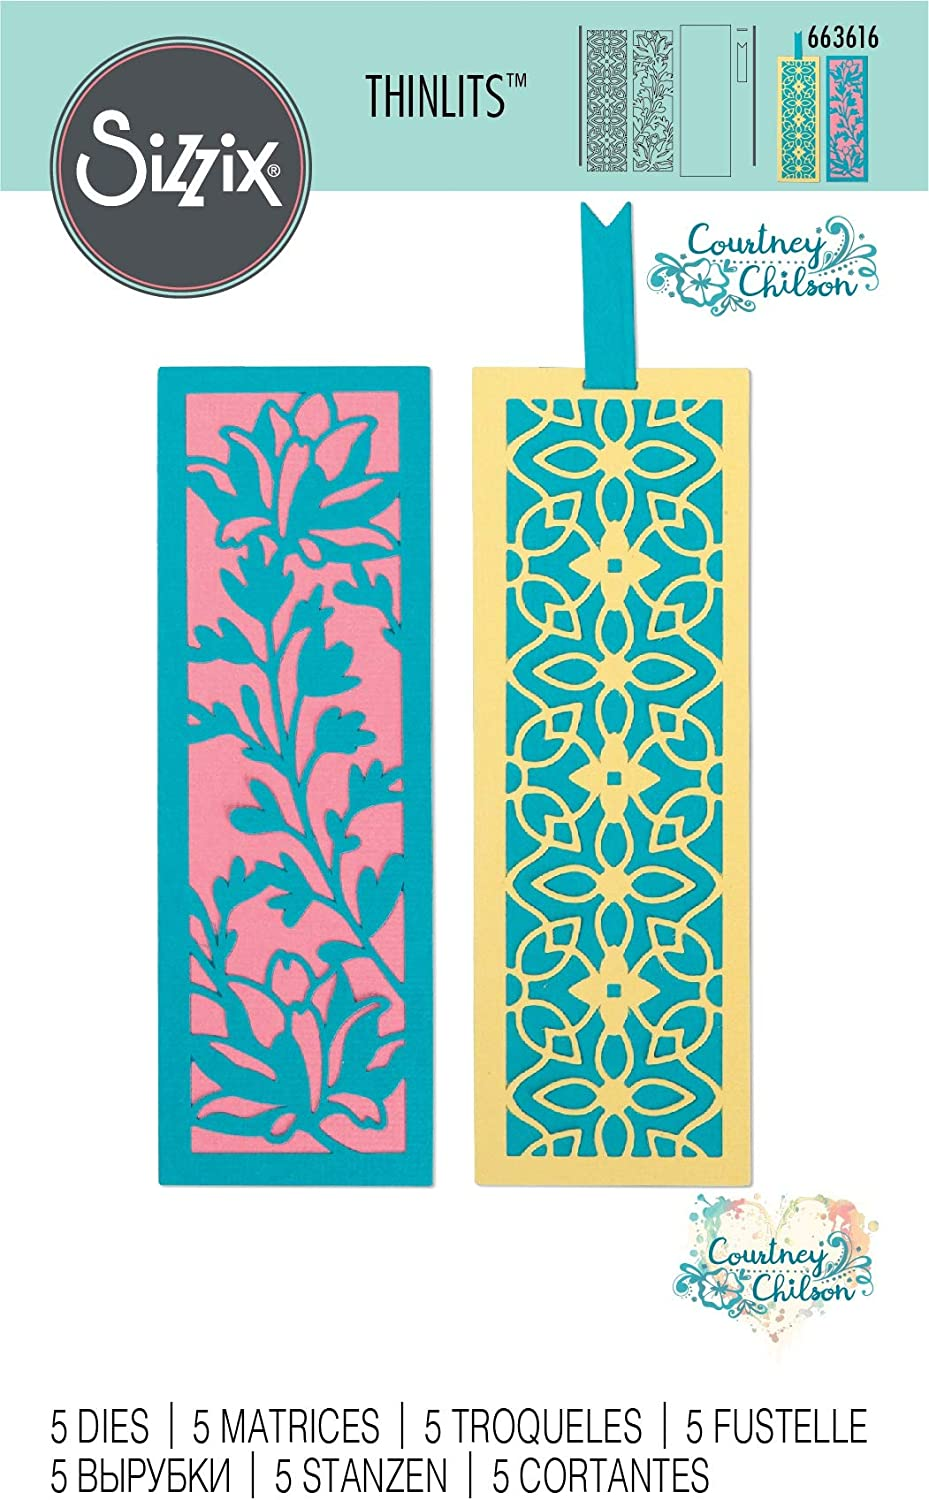 Sizzix Thinlits Die Set 5 Pack 663616 Botanical Bookmarks by Courtney Chilson Multicolour One Size